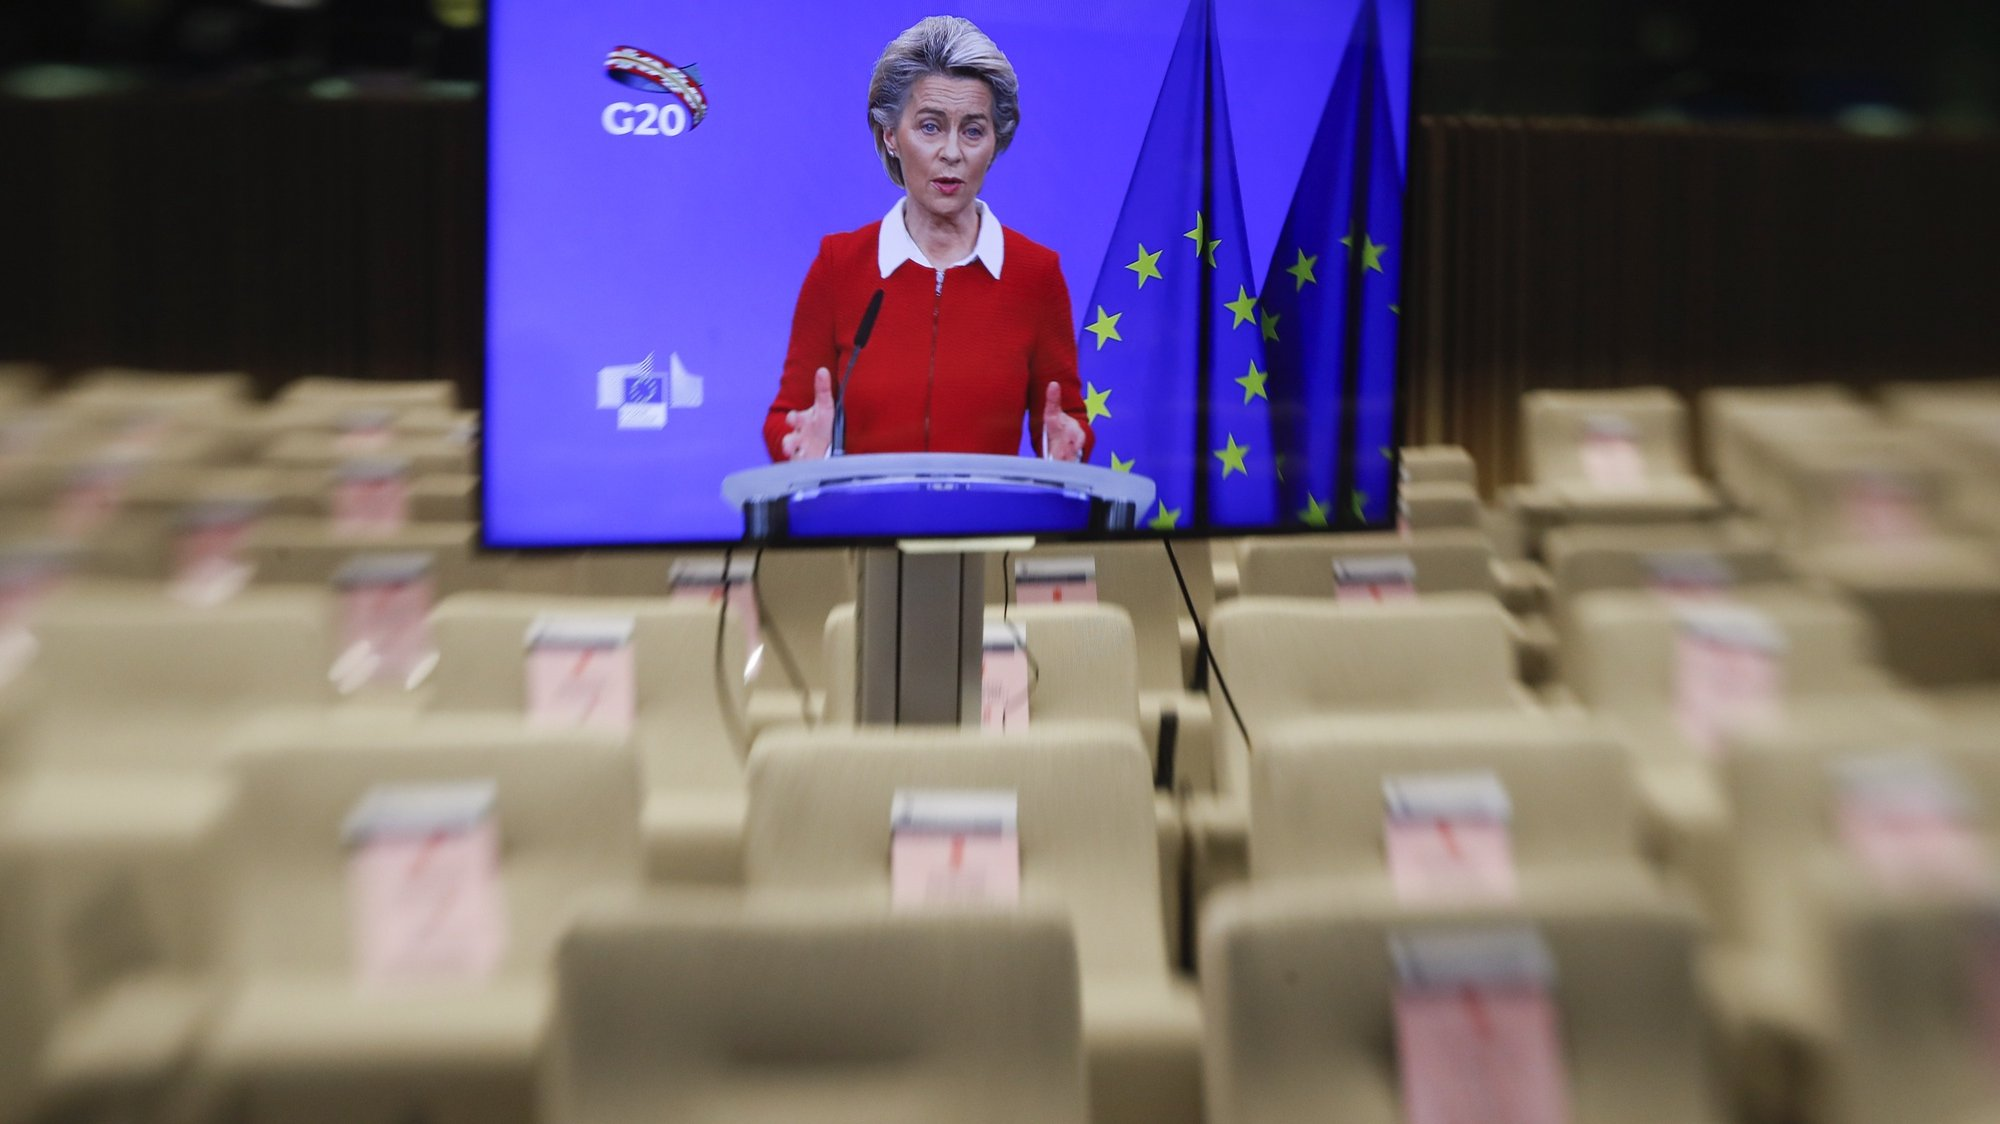 epa08830651 A tiltshift lens image of European Commission President Ursula Von Der Leyen seen on a screen as she along with European Council President Charles Michel (unseen) give a joint press briefing ahead of a G20 online meeting, in Brussels, Belgium, 20 November 2020. The G20 Leaders' Summit will be held virtually on 21 and 22 November and is organized by Saudi Arabia's current G20 Presidency.  EPA/OLIVIER HOSLET / POOL